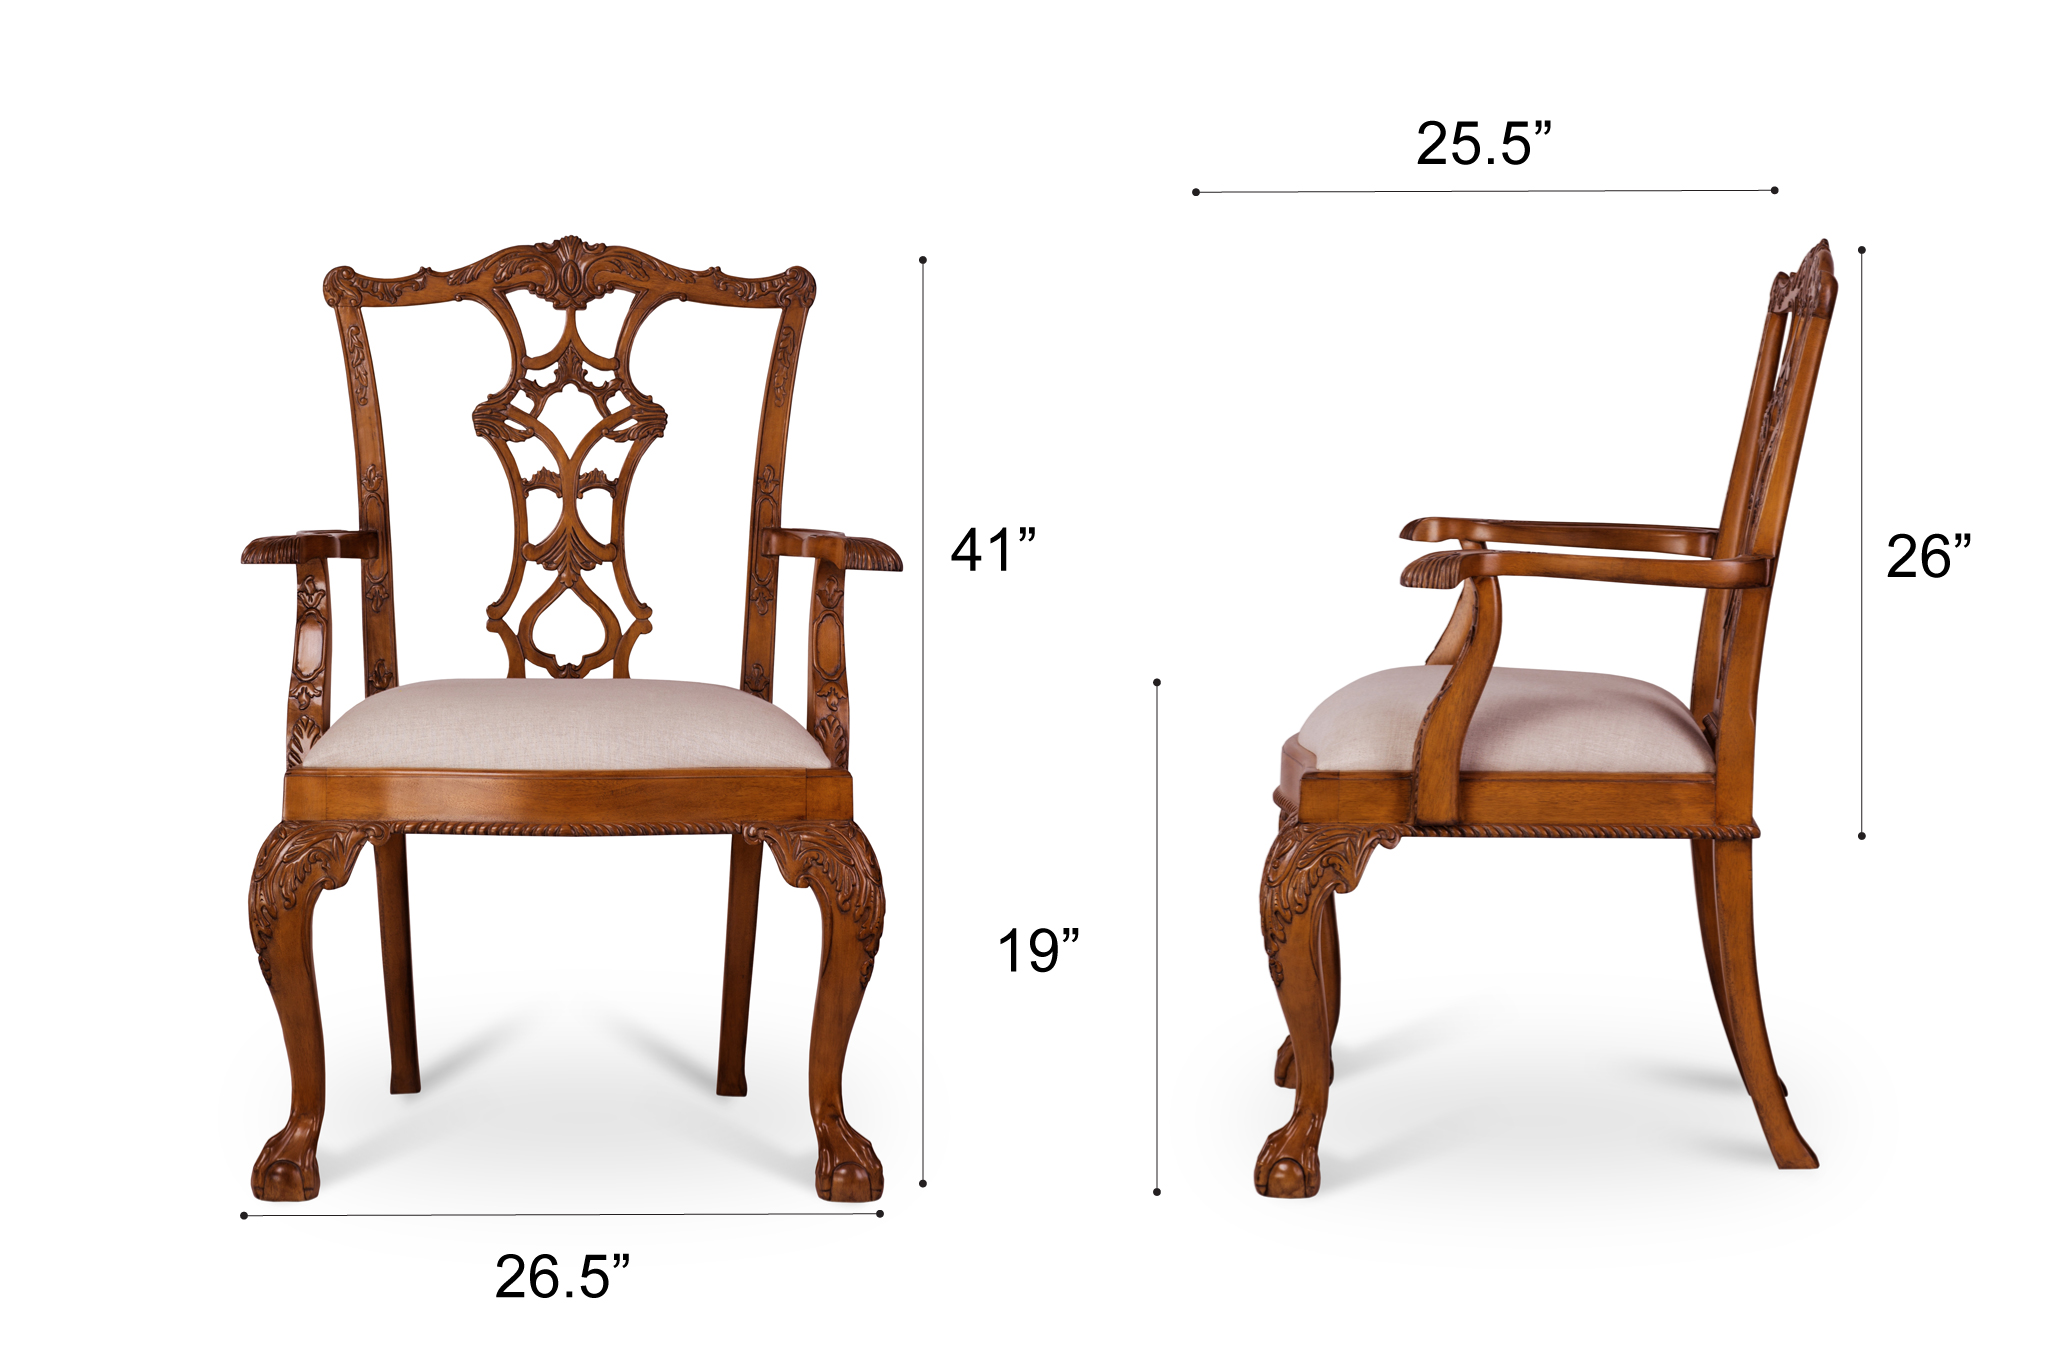 Dowel Furniture Julie Armchair Dimensions